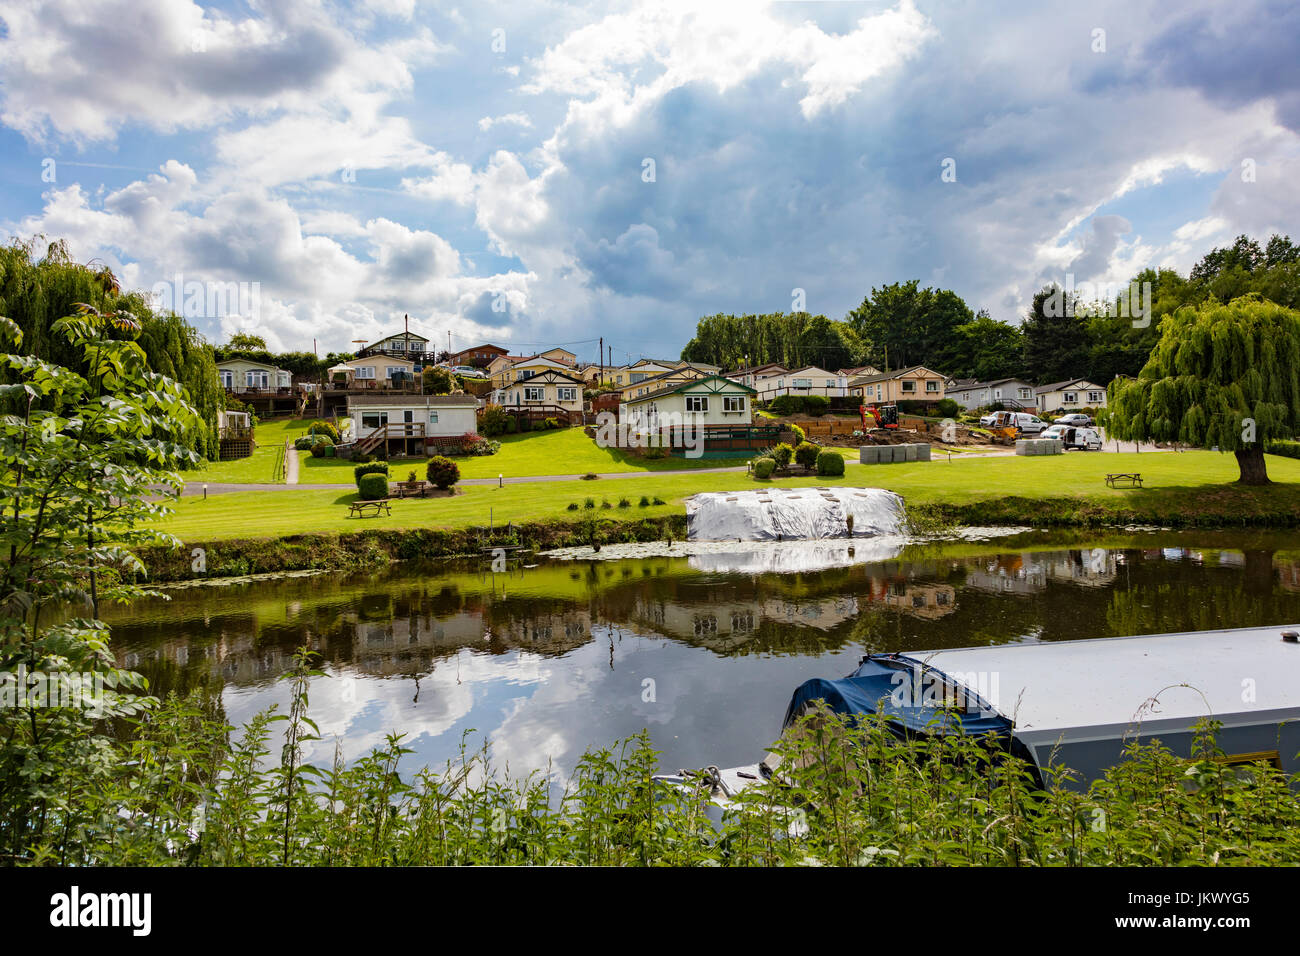 Kent Farm Caravans A Static And Mobile Home Park On The River Medway At East Farleigh Near Maidstone UK